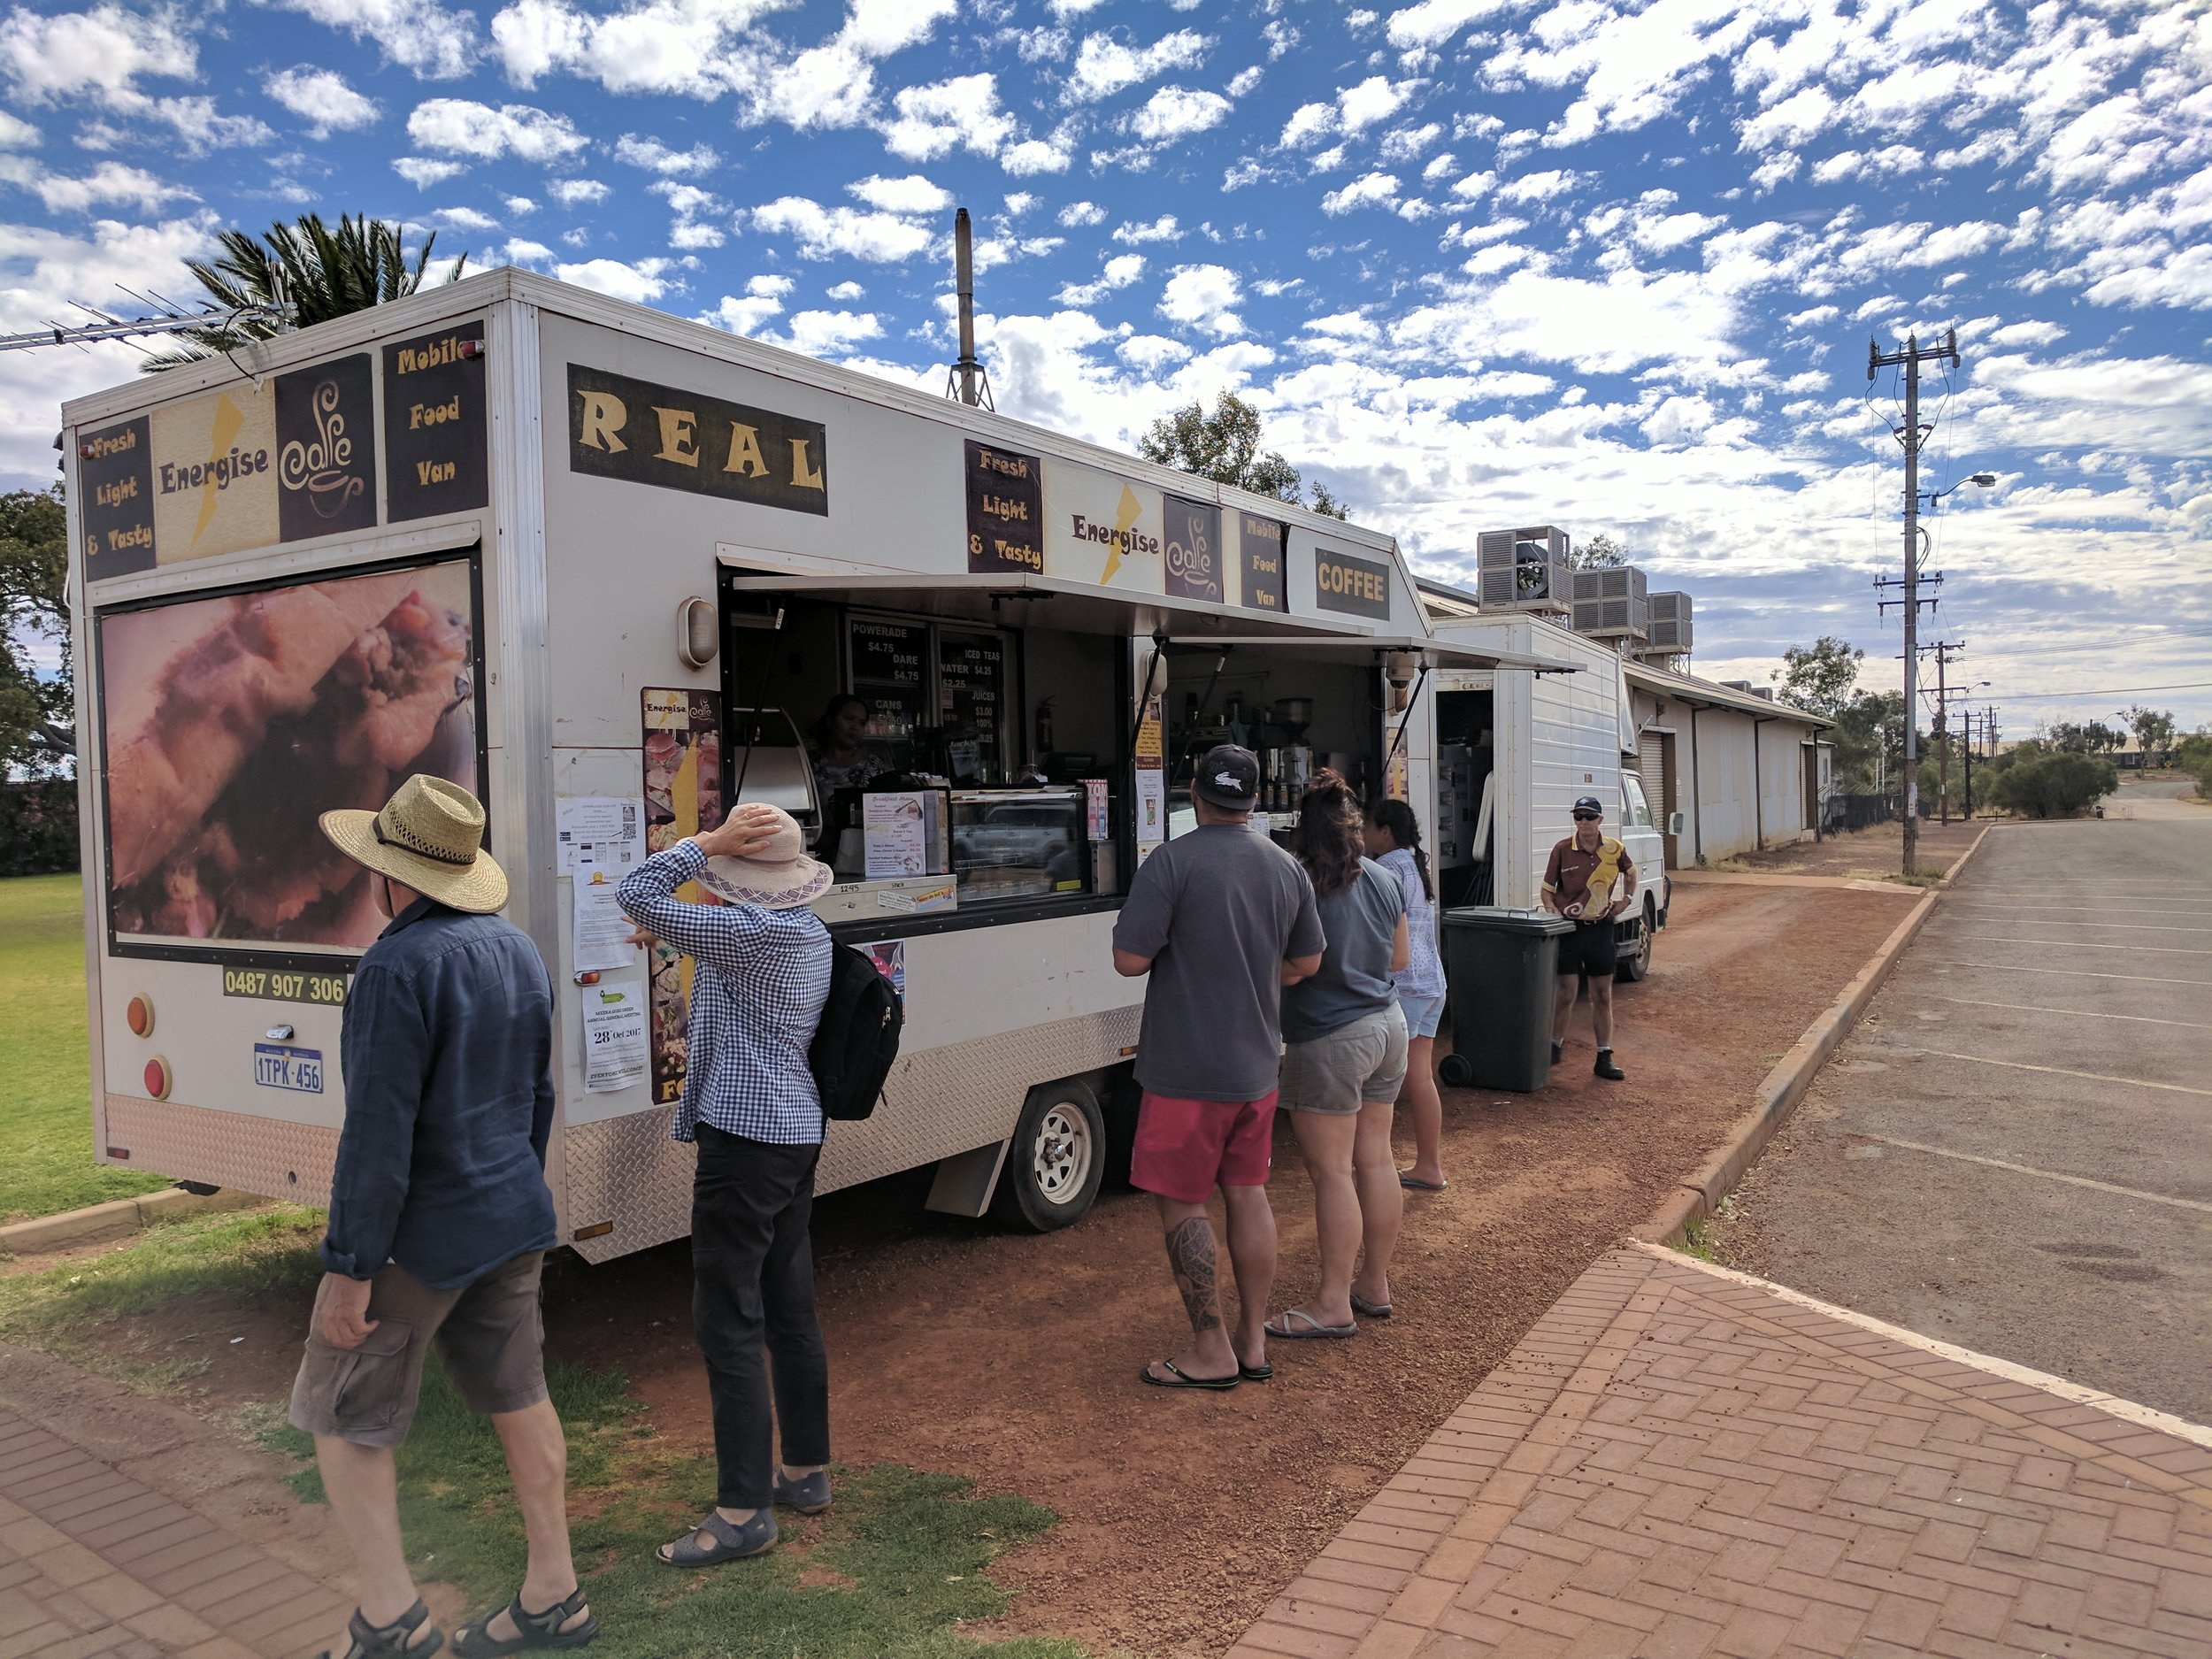 The Lunch rush at the Meekatharra radical food van!